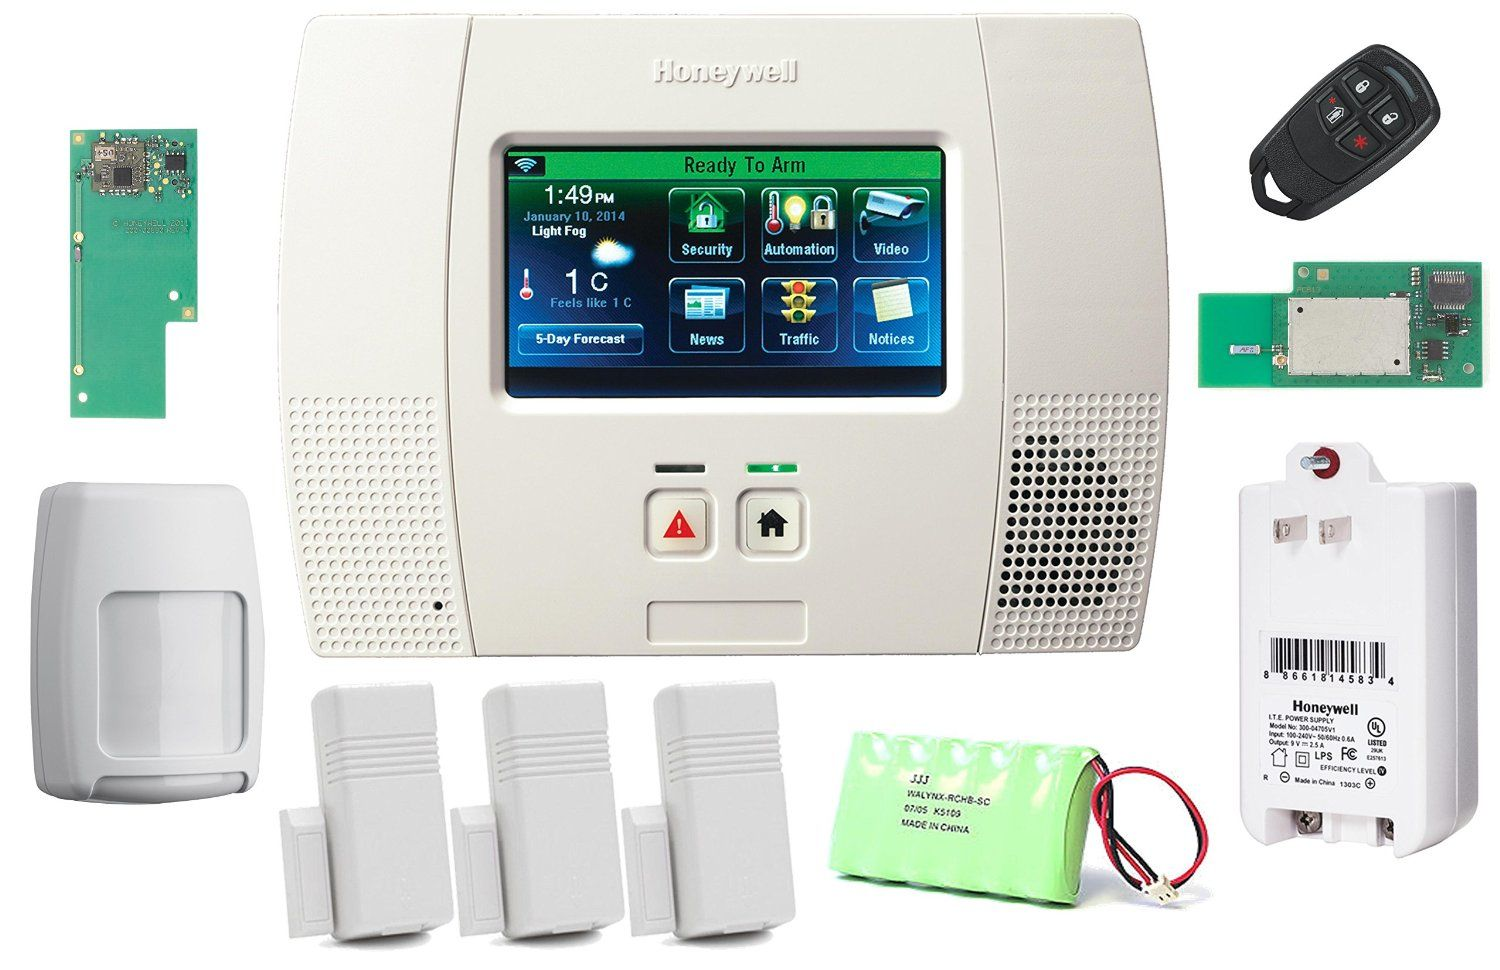 The honeywell wireless lynx touch l5200 home securityautomation honeywell wireless lynx touch home automationsecurity alarm kit with wifi and zwave module unbelievable item right here diy do it yourself today solutioingenieria Image collections